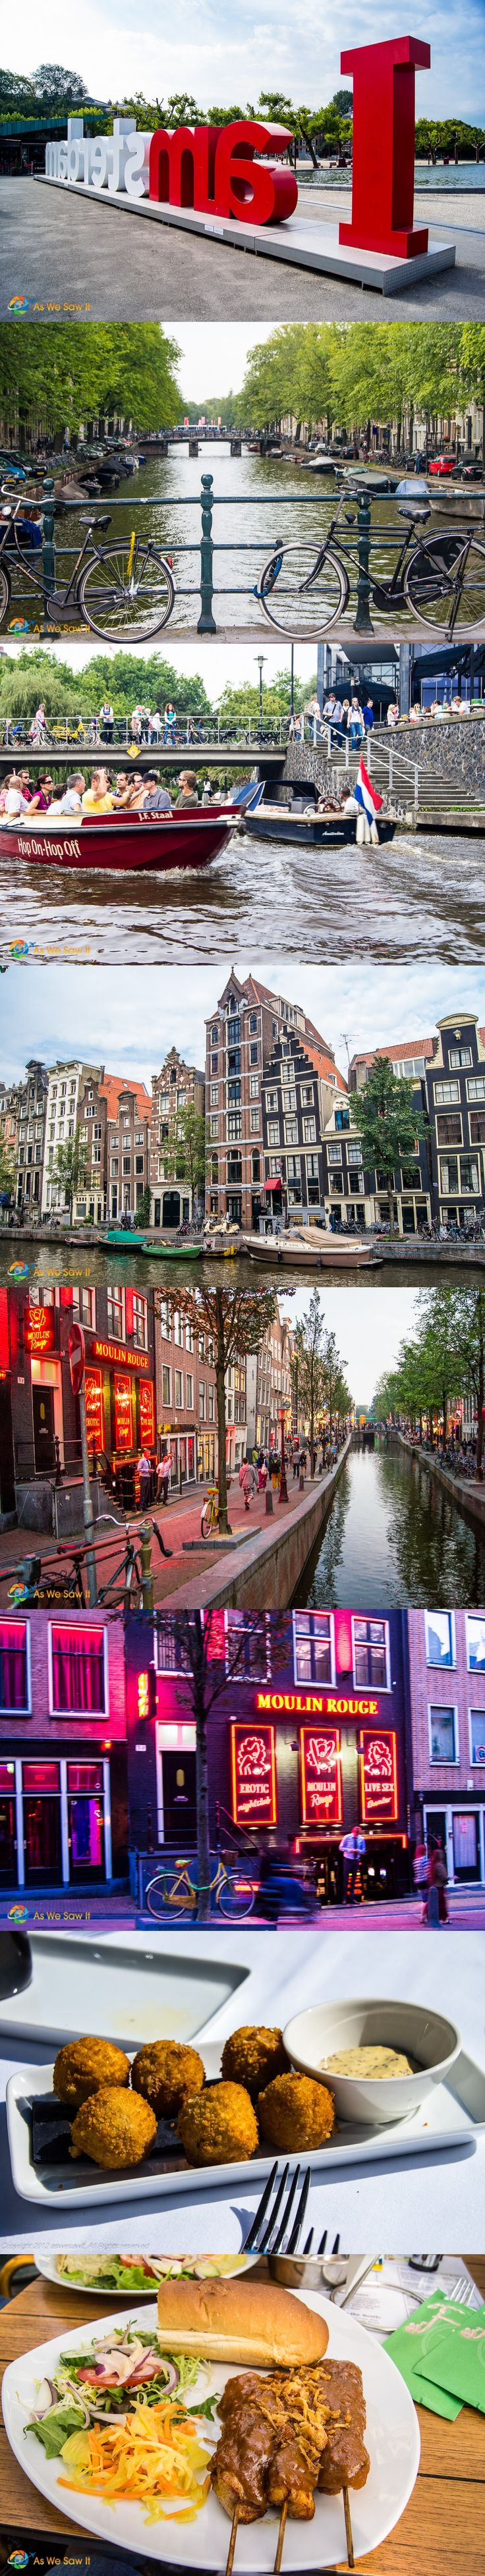 Amsterdam in one day? Yes you can! The Venice of the north deserves several days, but when you have a layover do these.